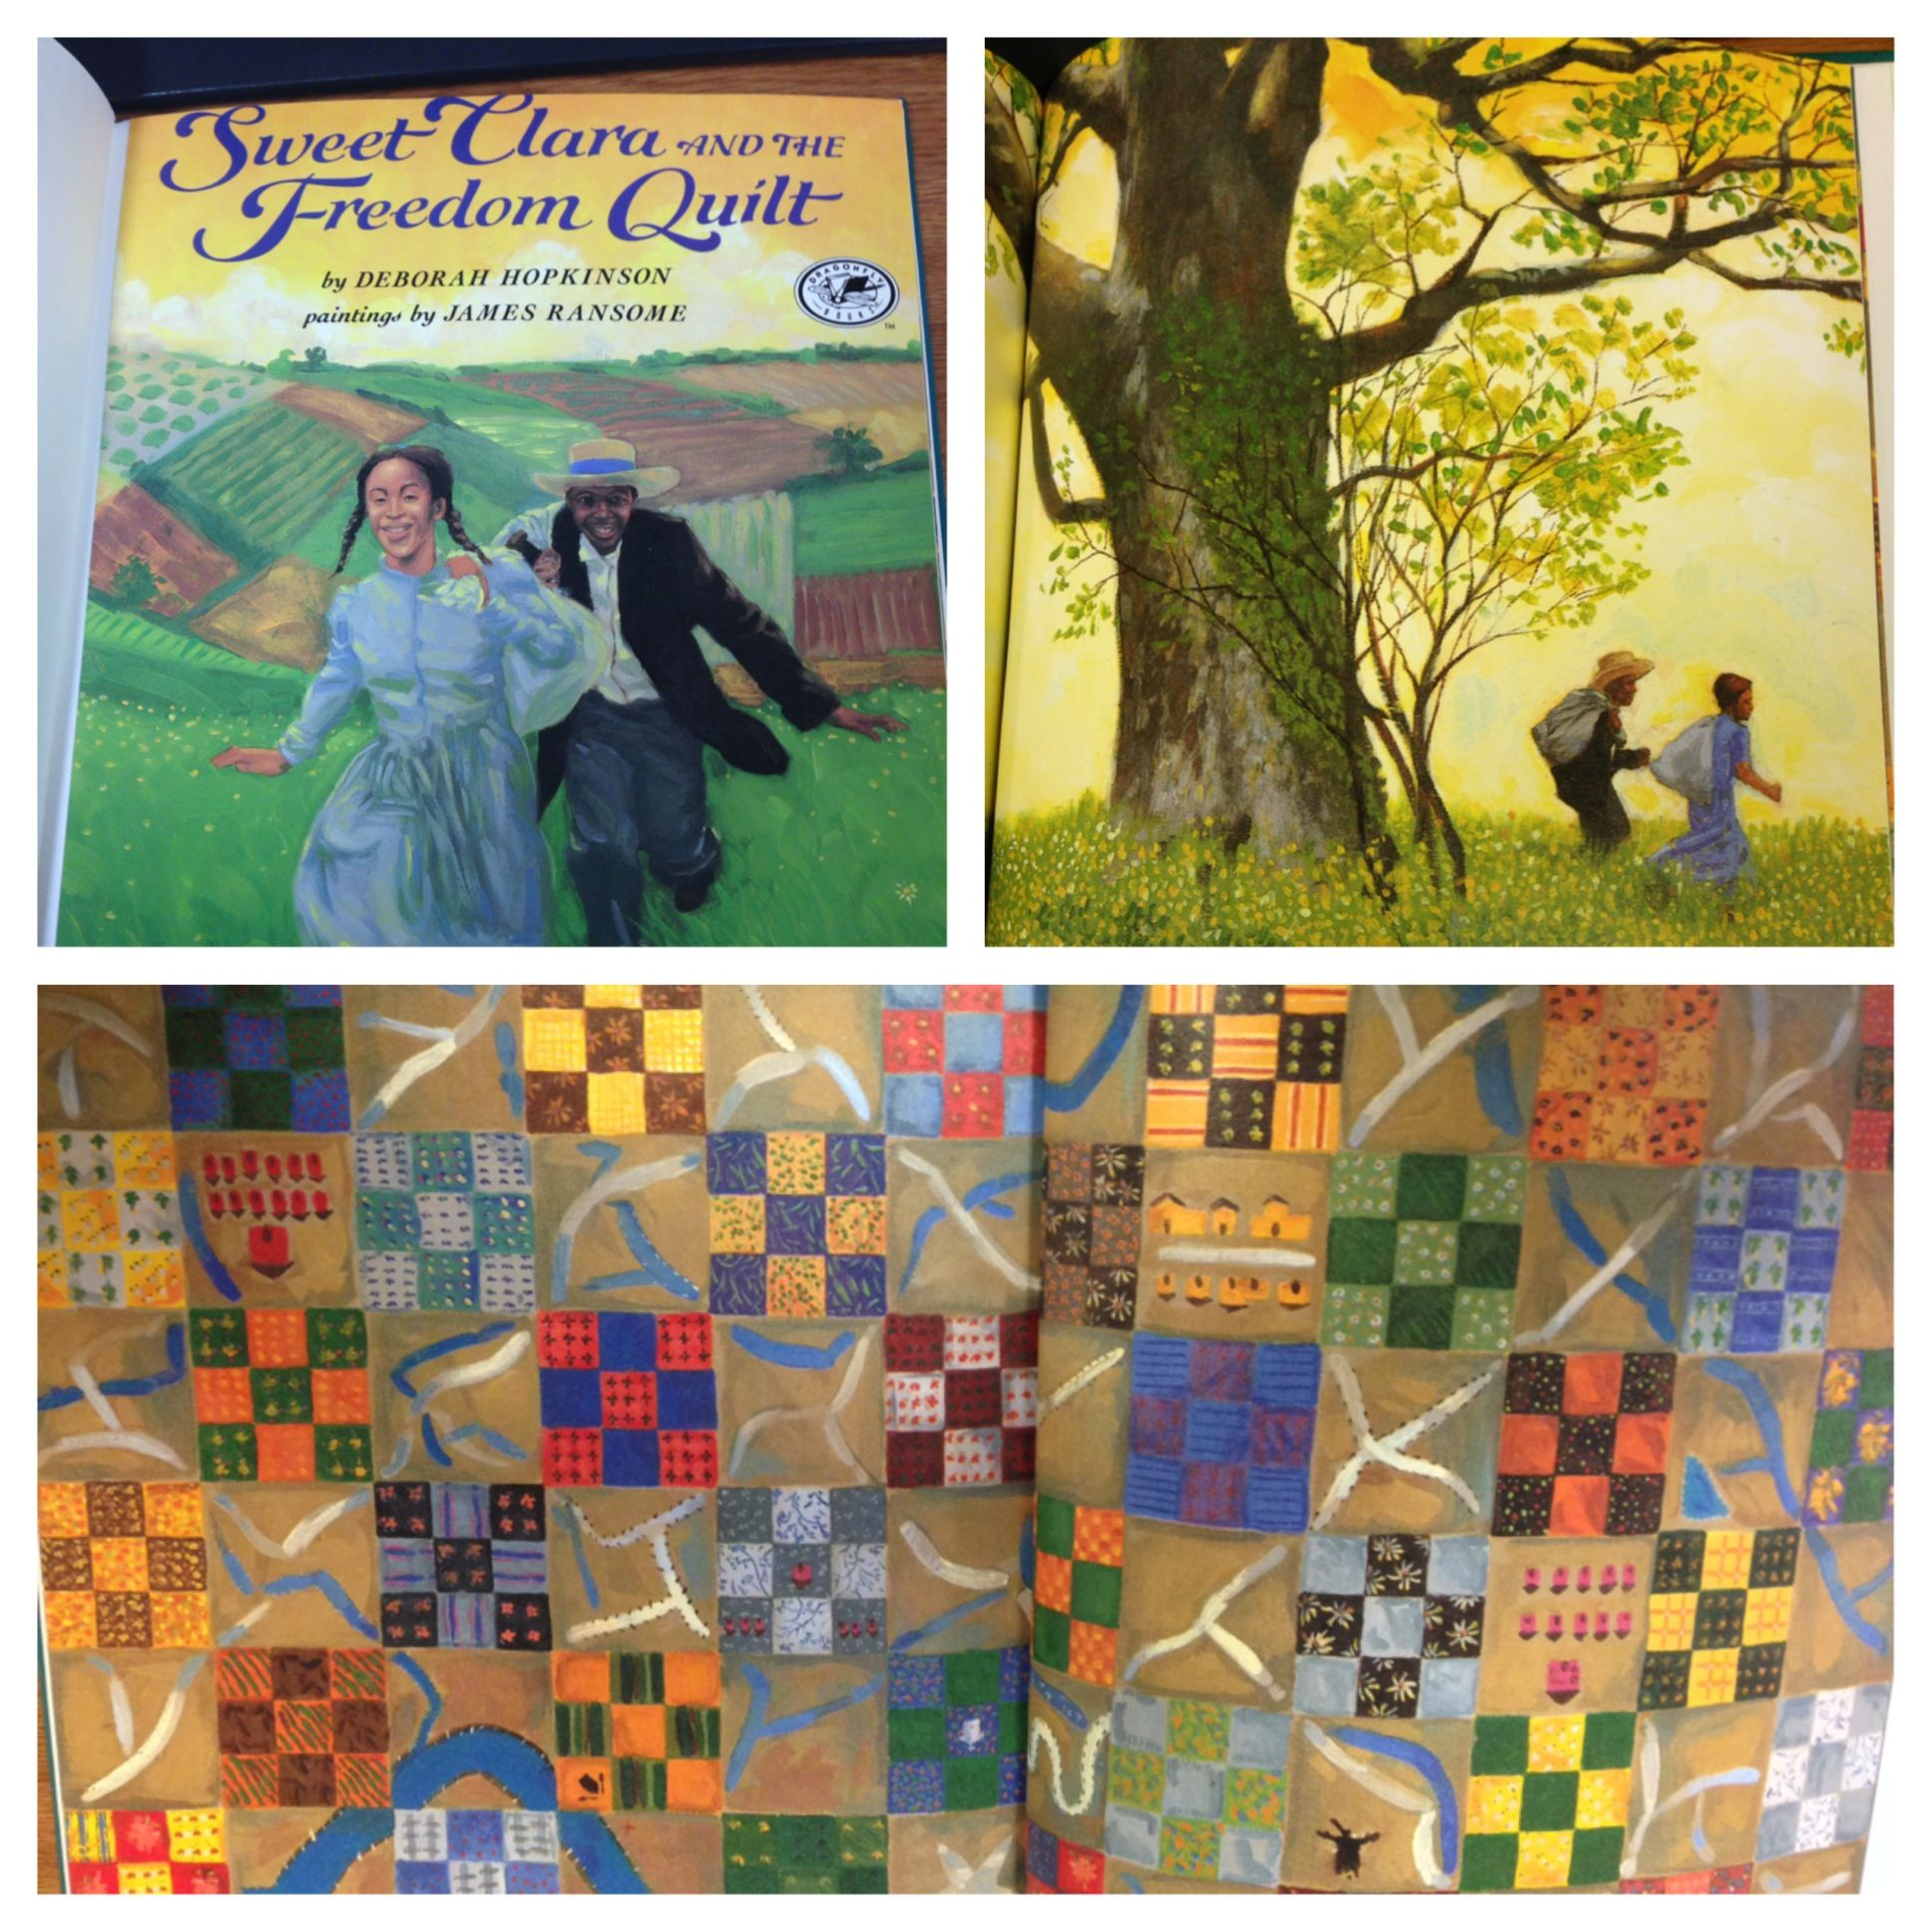 Sweet Clara And The Freedom Quilt By Deborah Hopkinson Grade Second Grade Standard 8 2 2 D Identify Ho Freedom Quilt Children S Literature Work Conditions